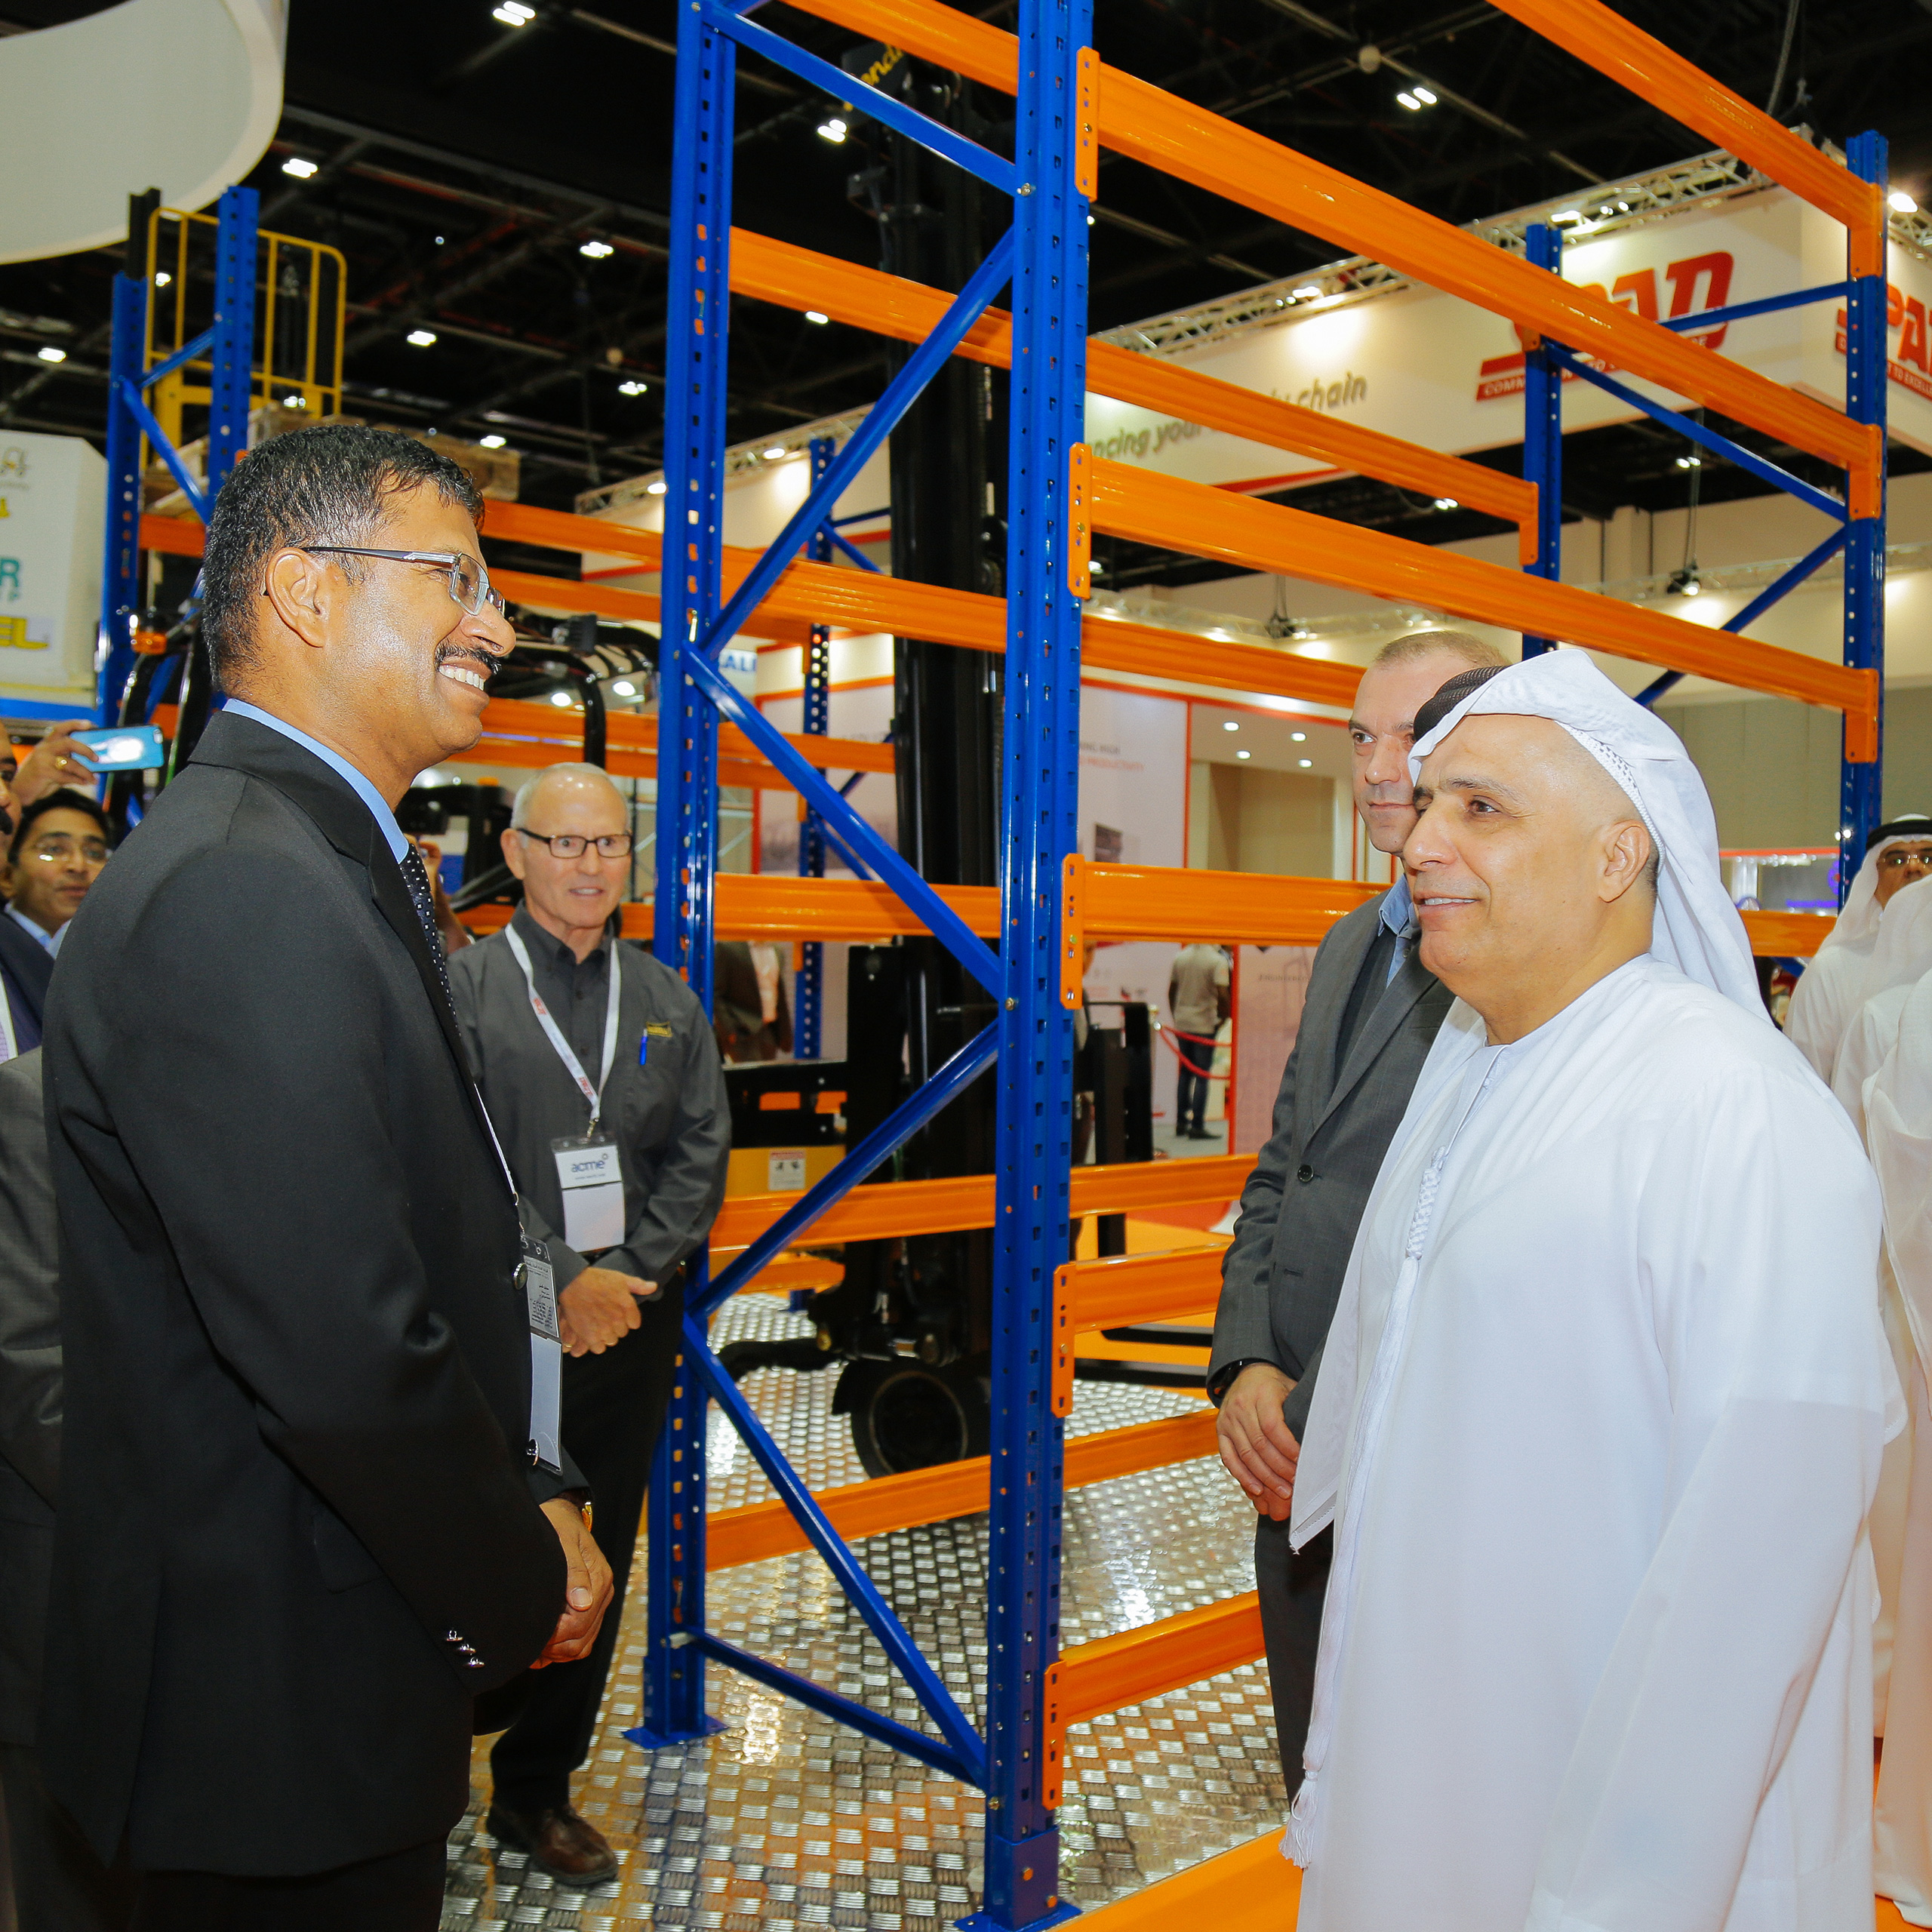 Materials Handling Middle East - Materials Handling Middle East 2017 opens in Dubai featuring 126 exhibitors from 20 countries